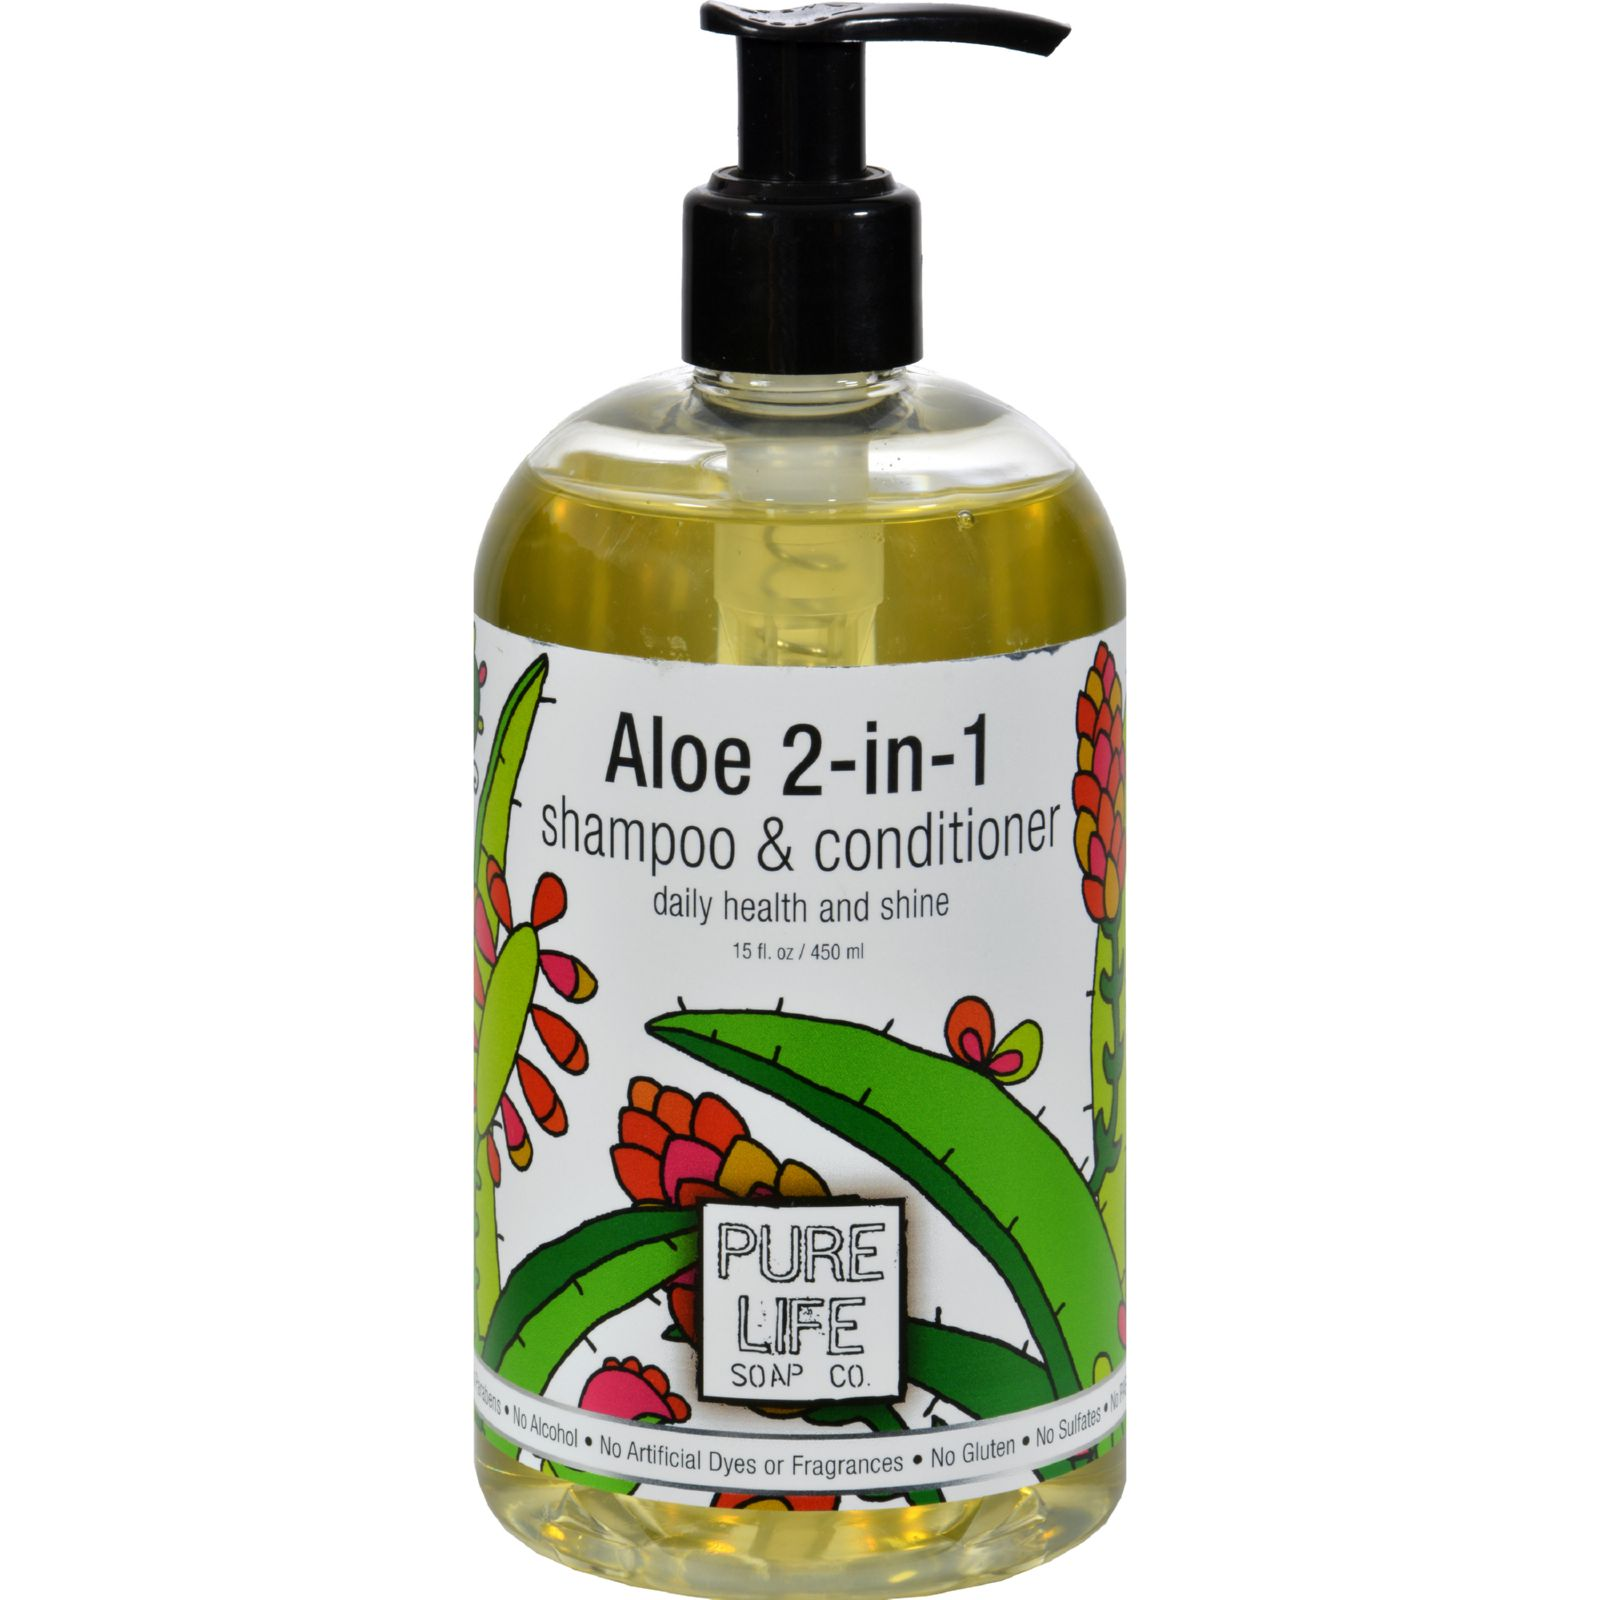 Pure Life Soap Shampoo and Conditioner - Aloe 2-in-1 - 15 oz